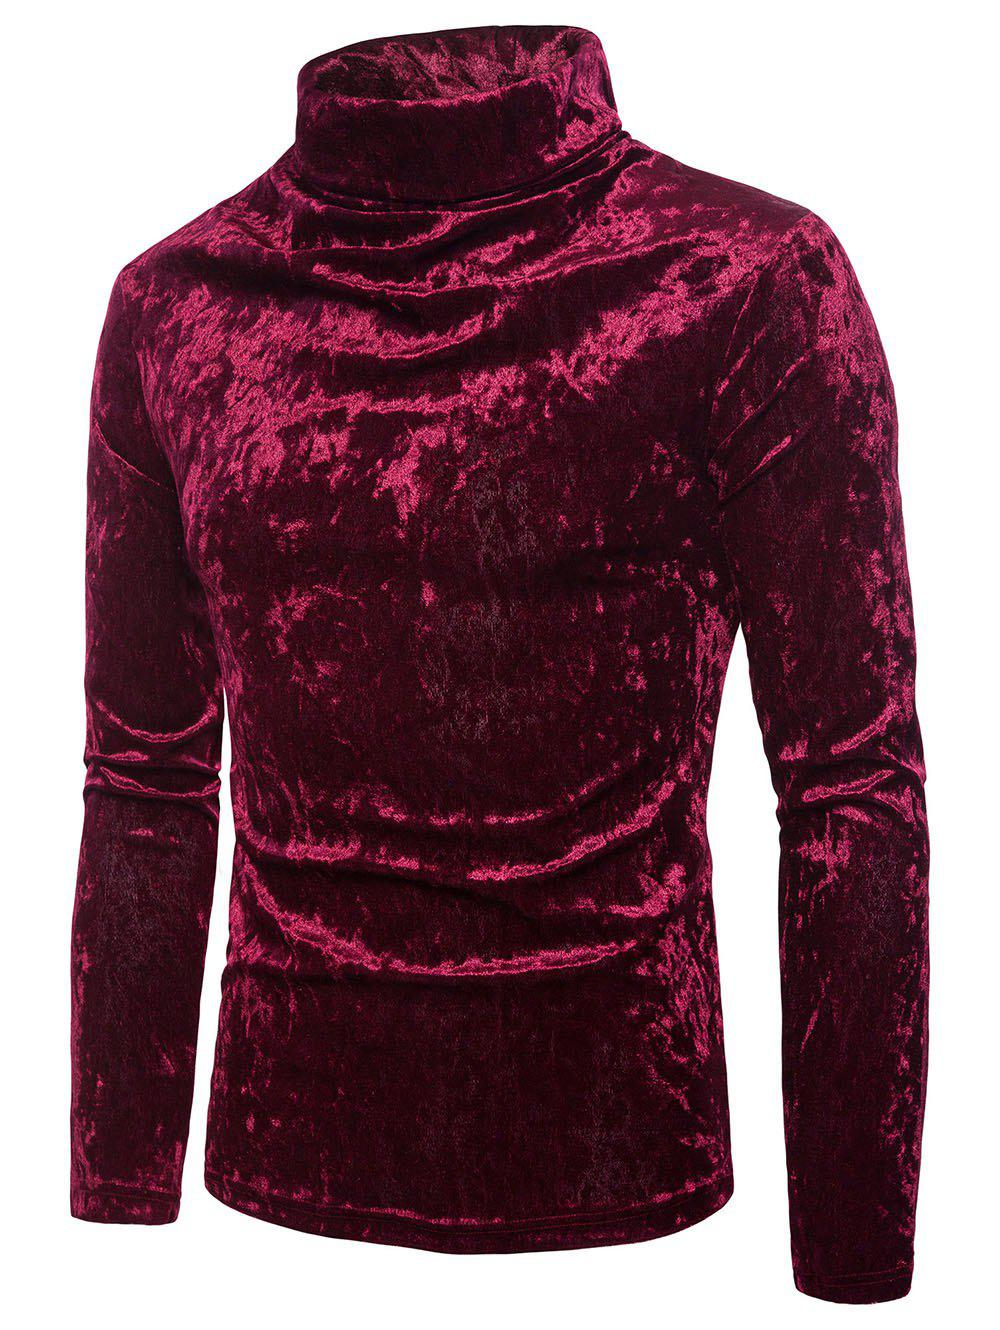 Cheap Turtleneck Solid Coral Fleece Pullover Sweatshirt